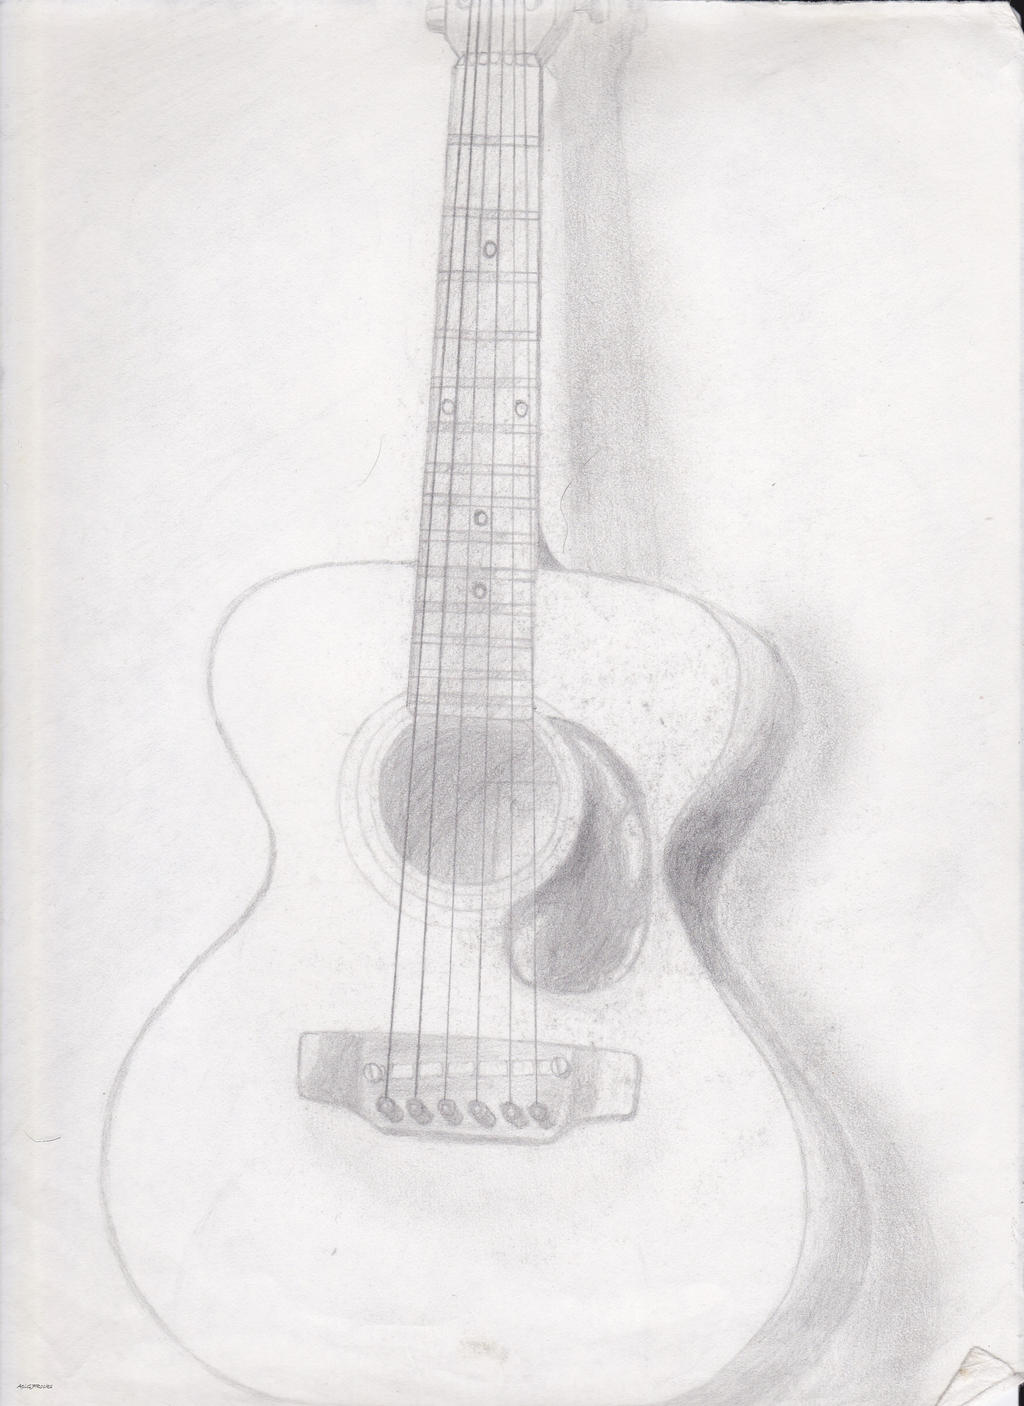 My Acoustic Guitar by AplG7 on DeviantArt